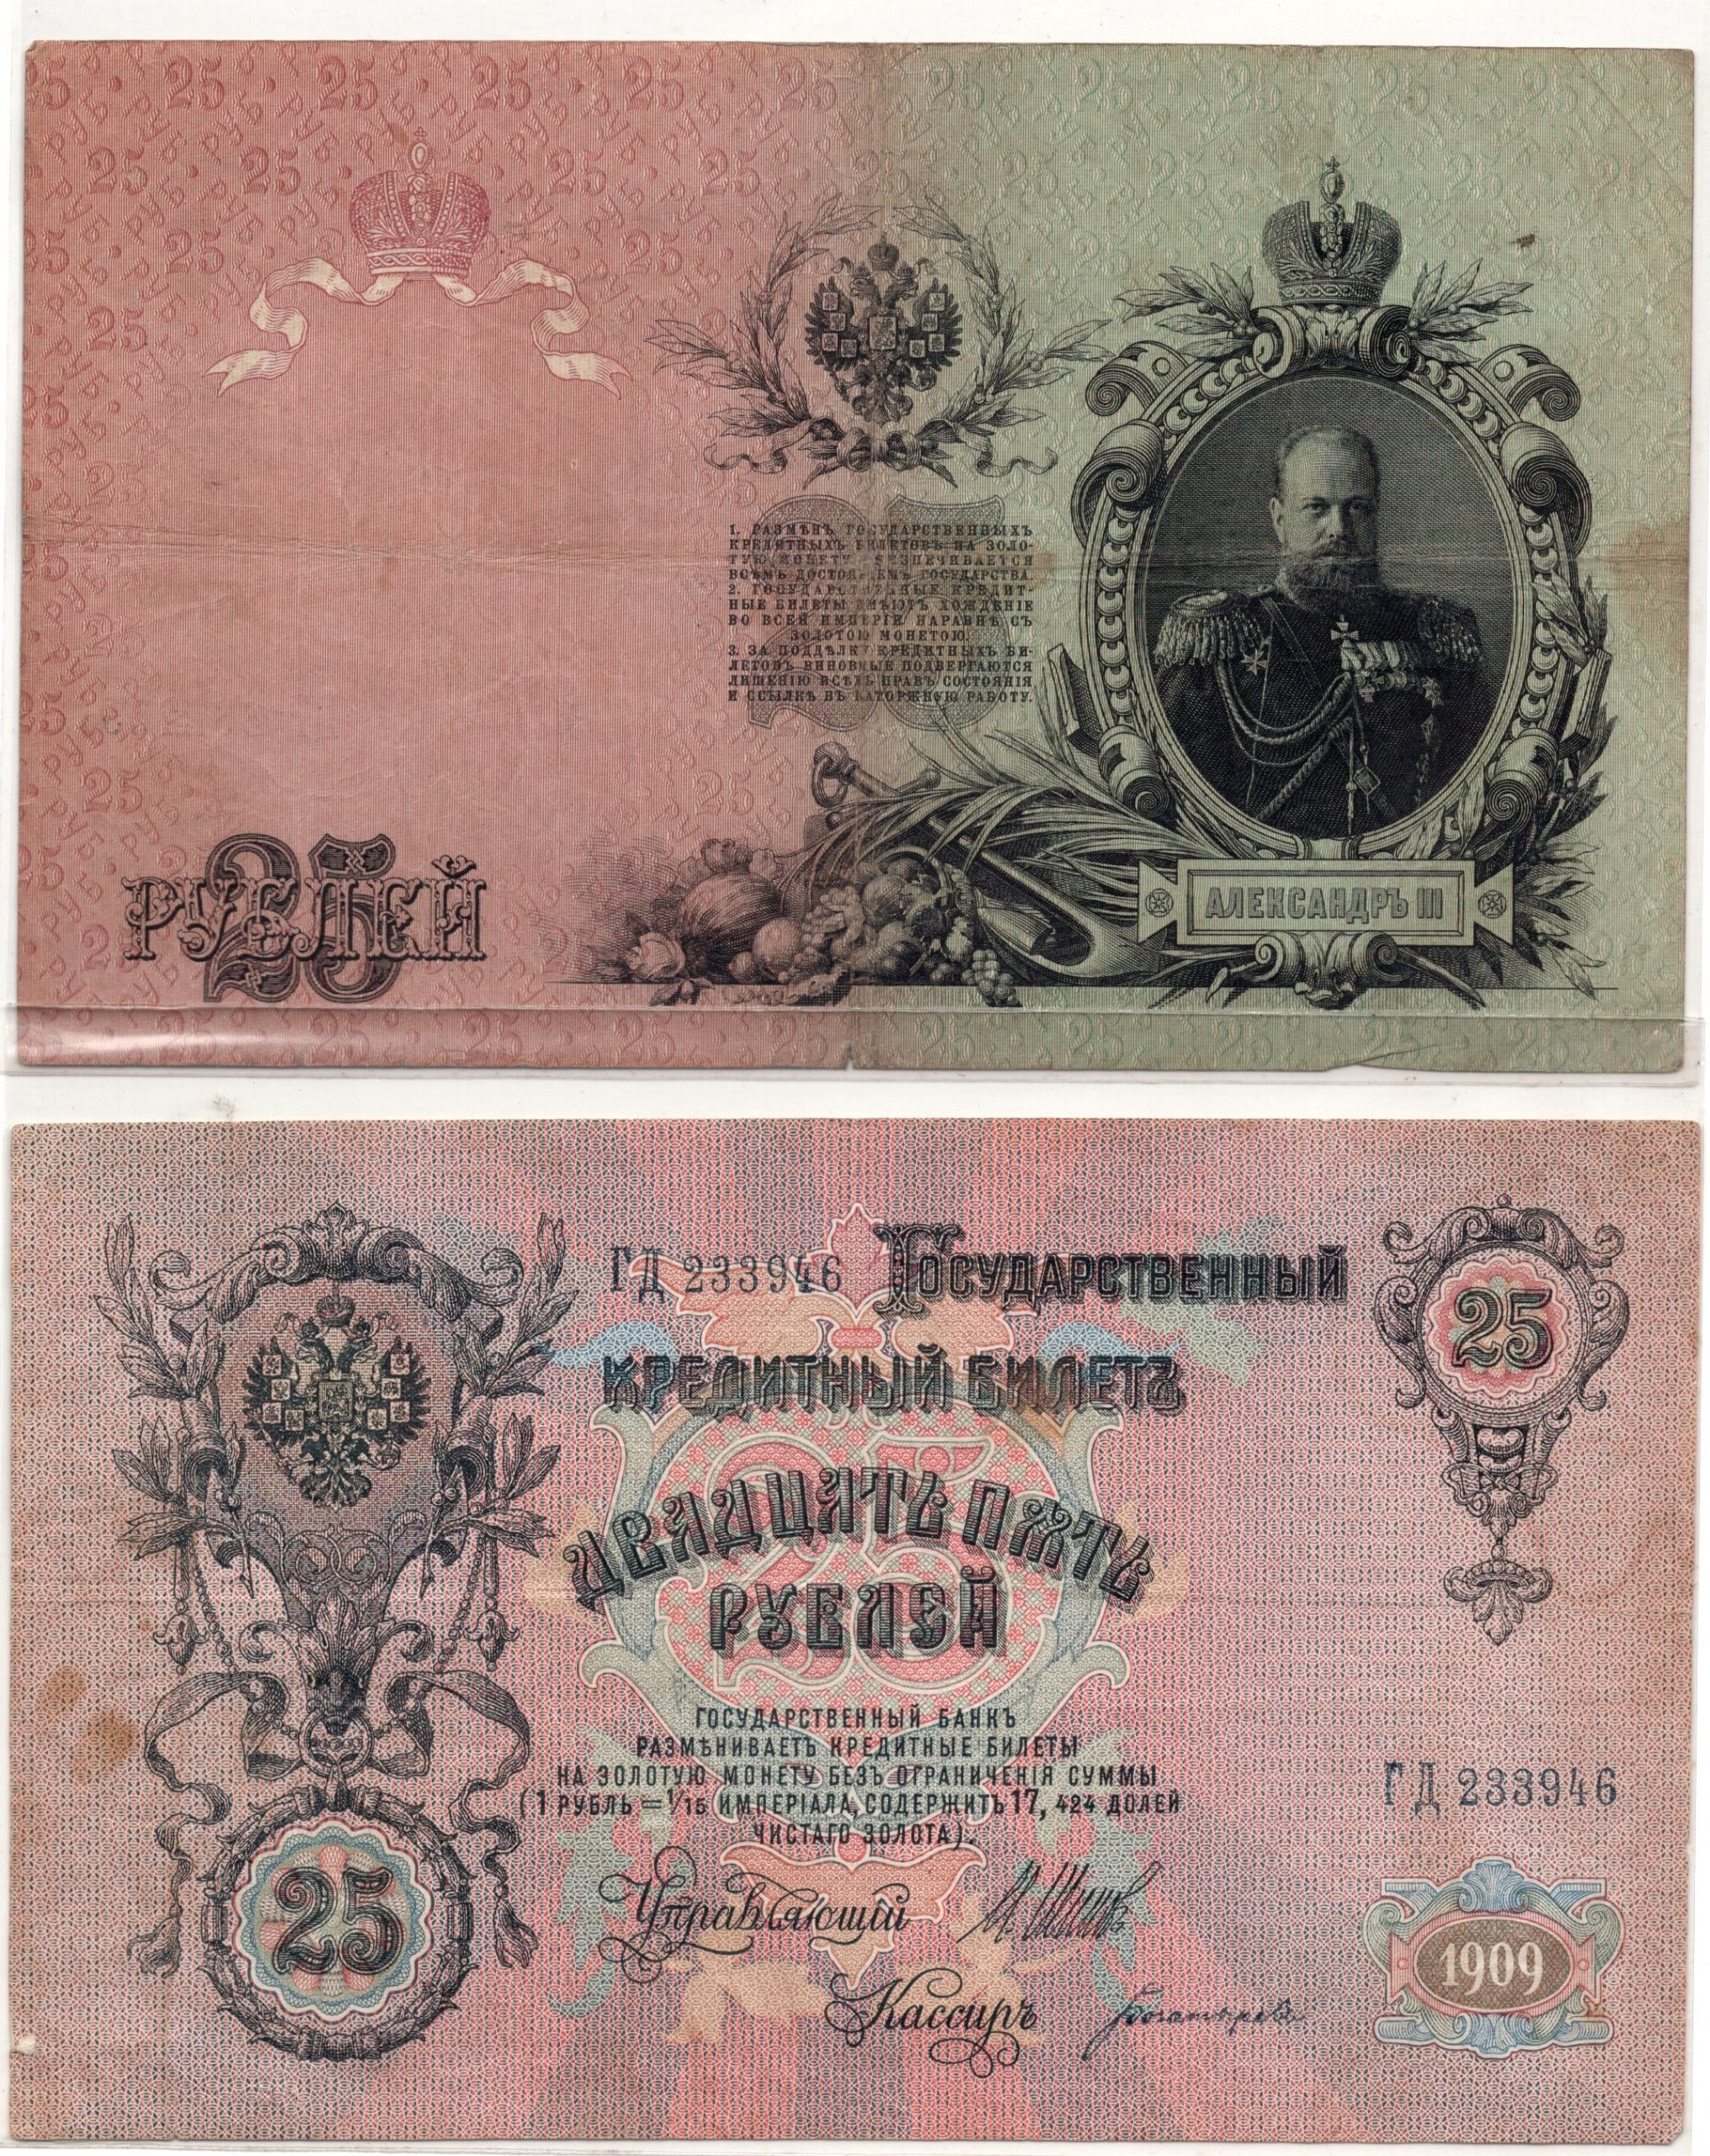 russia 25 roubles 1909